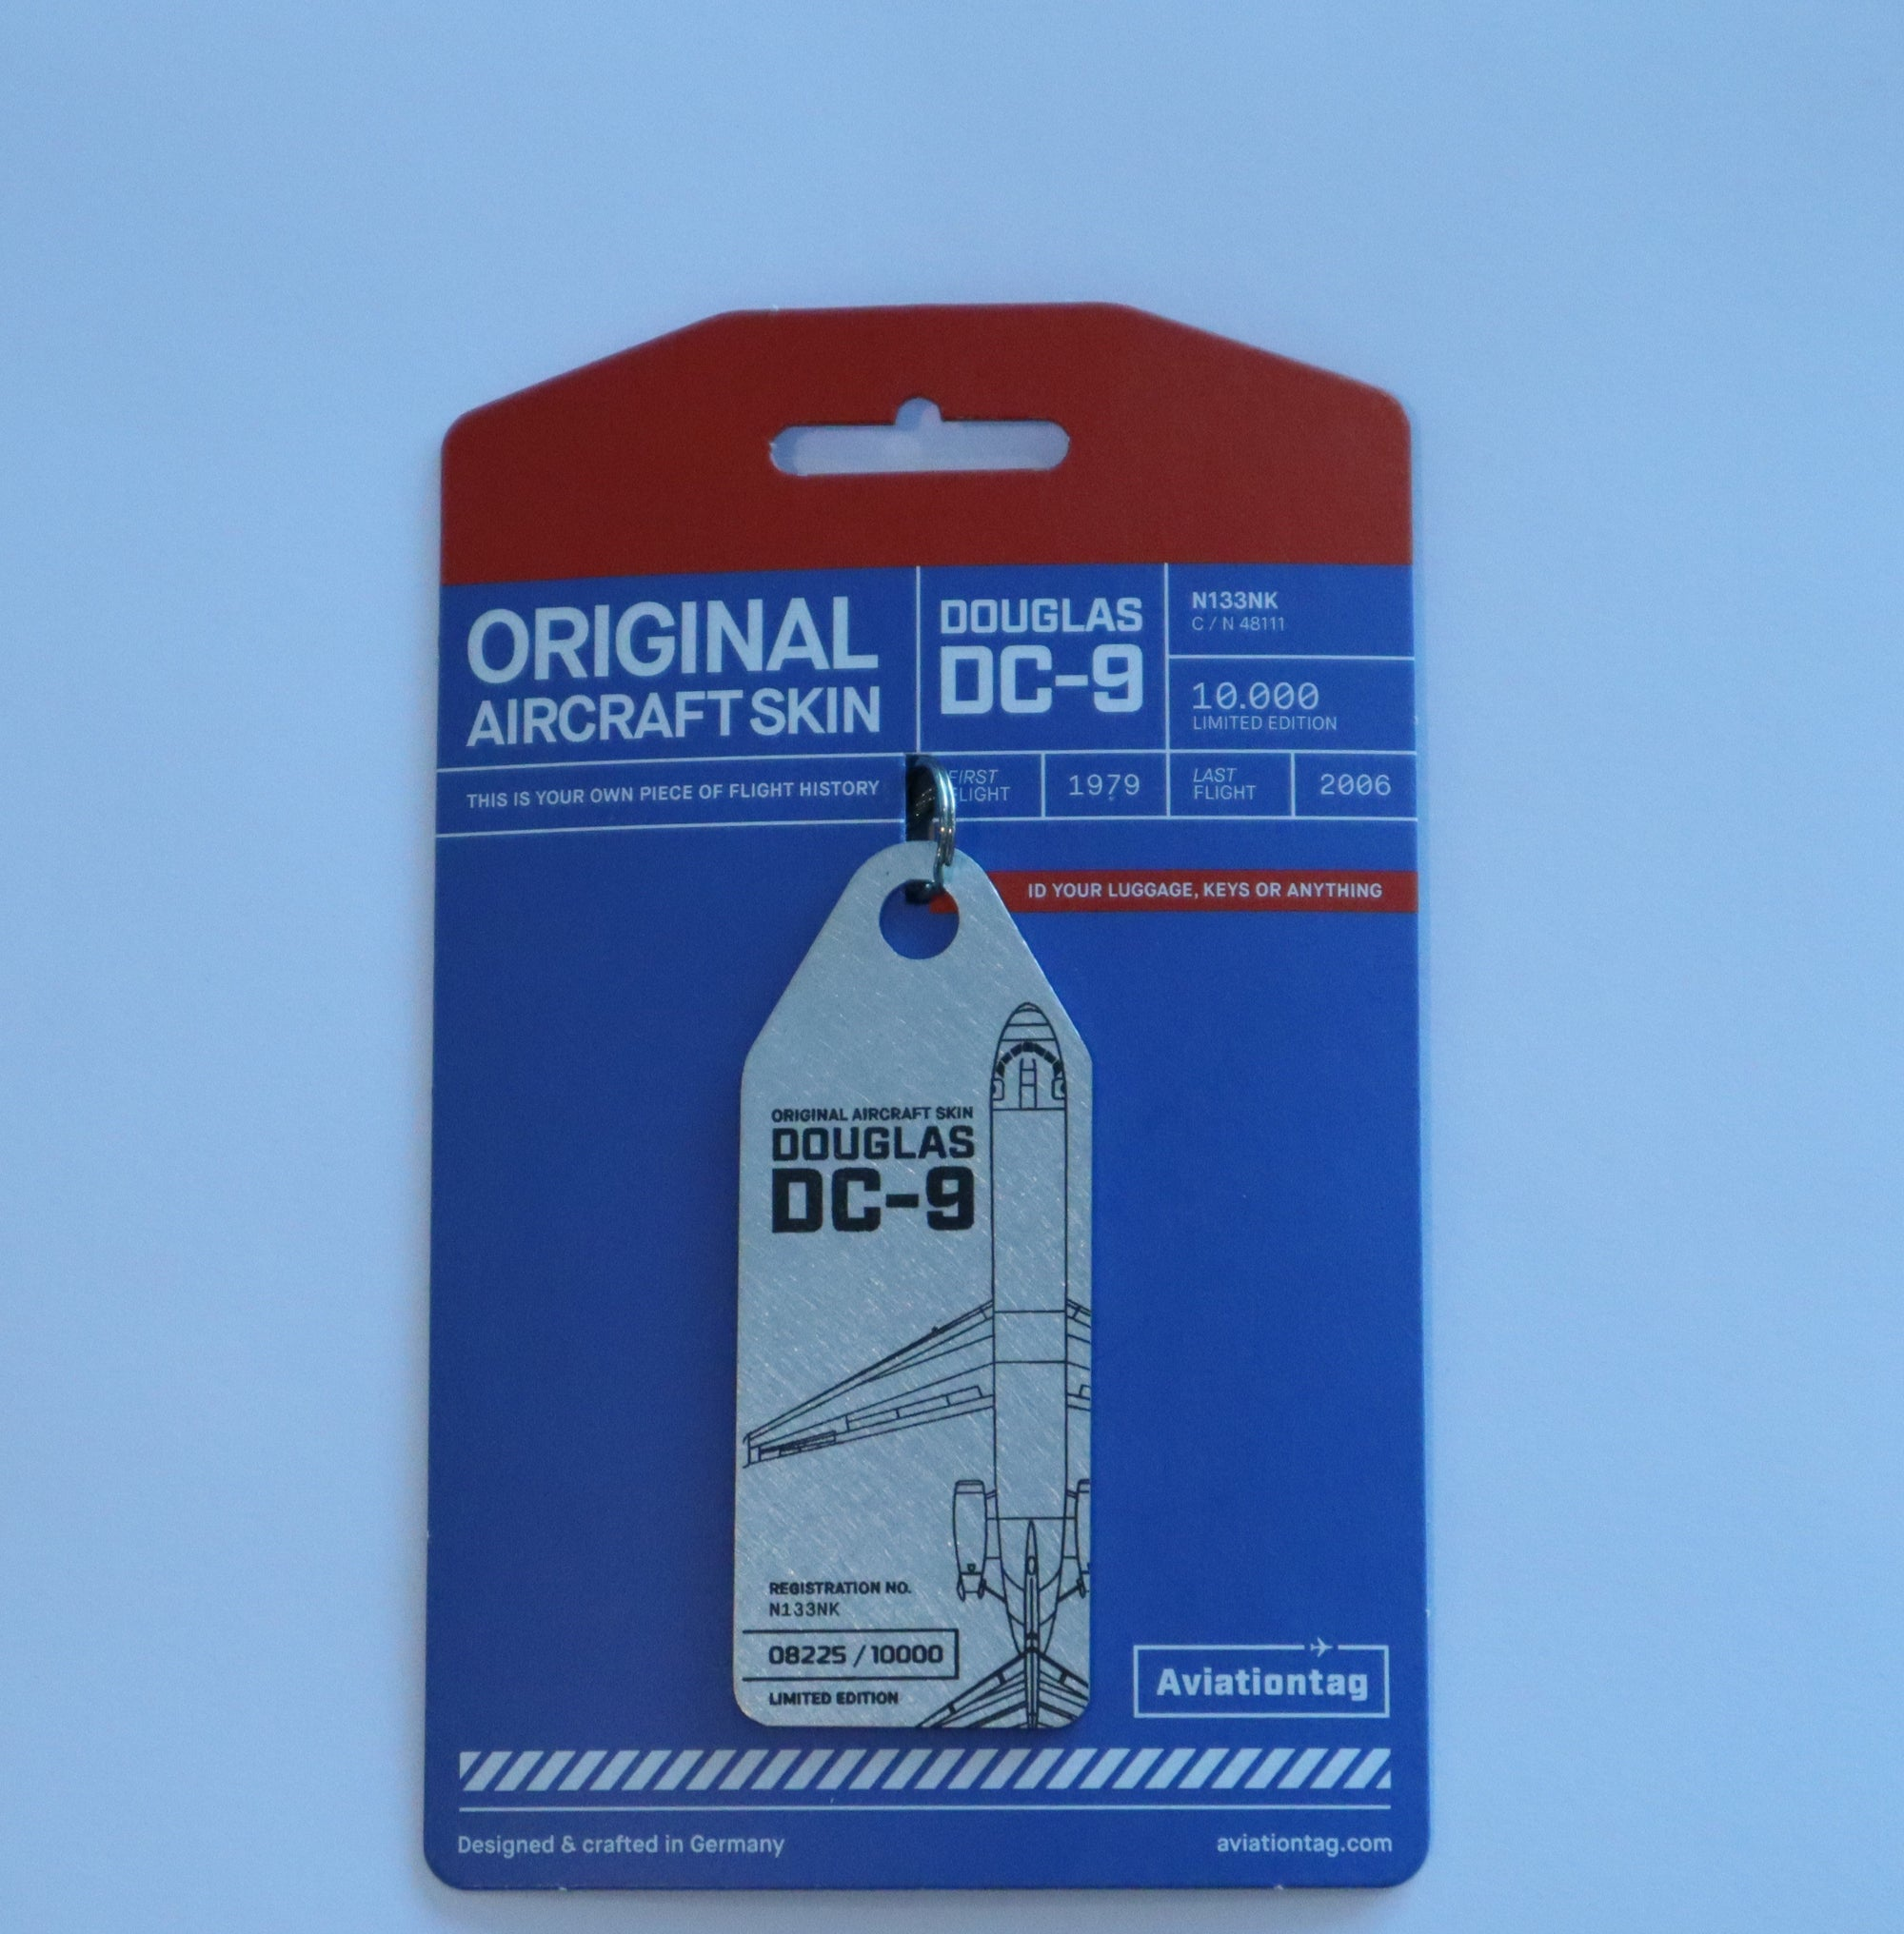 Orginal Aircraft Skin - Douglas DC-9 - Key Tag